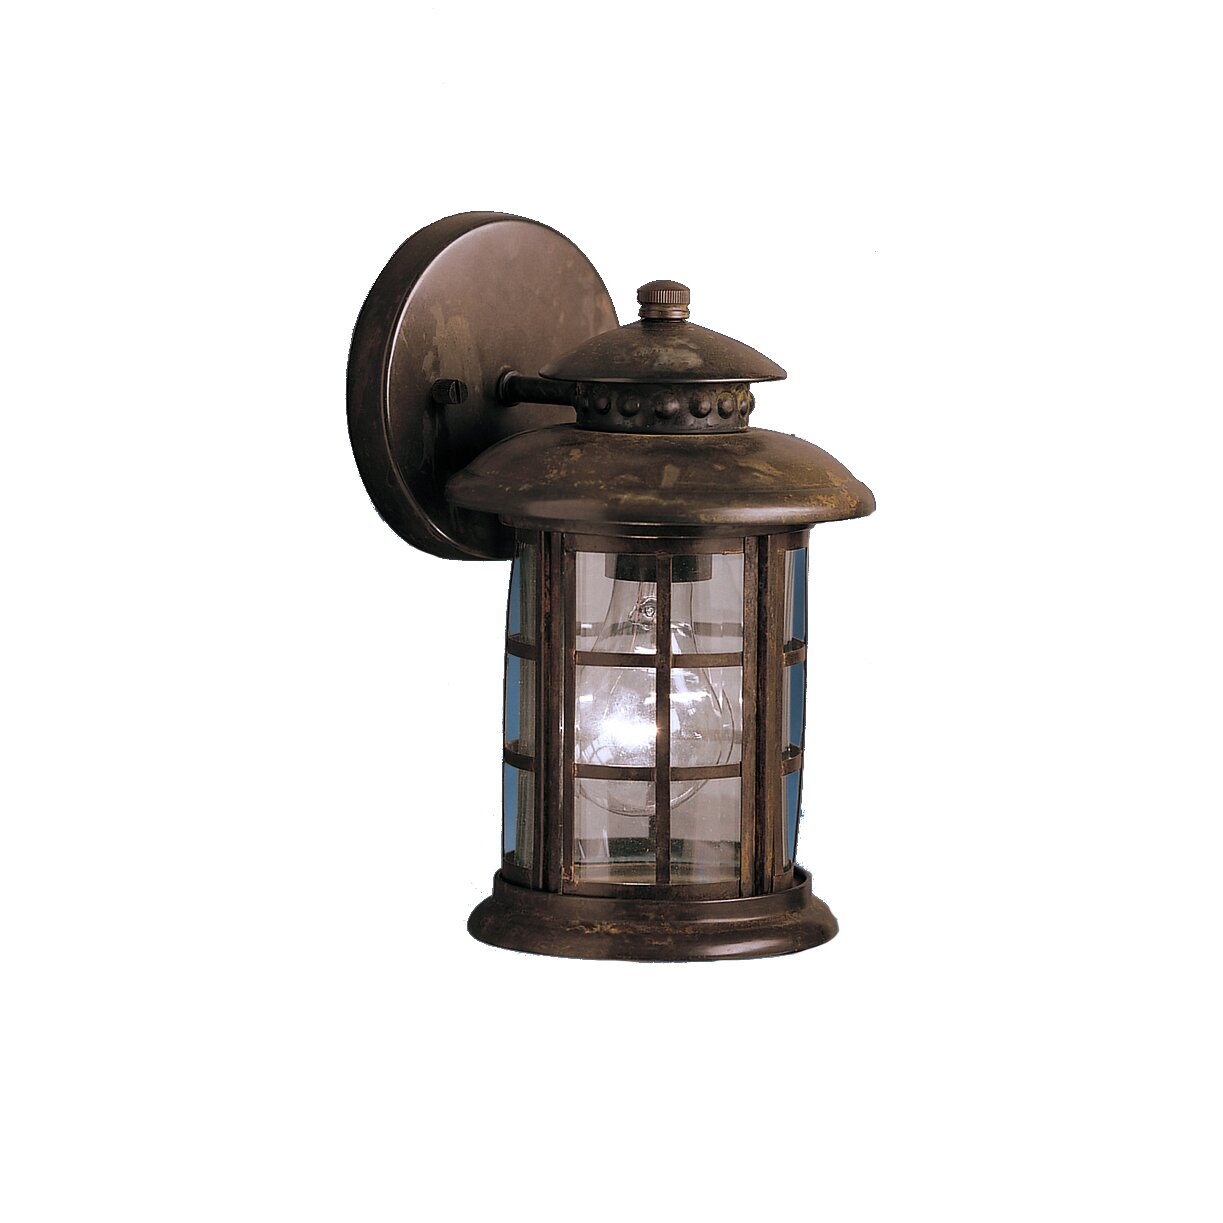 Wayfair Outdoor Wall Lights : Kichler Rustic 1 Light Outdoor Wall Lantern & Reviews Wayfair